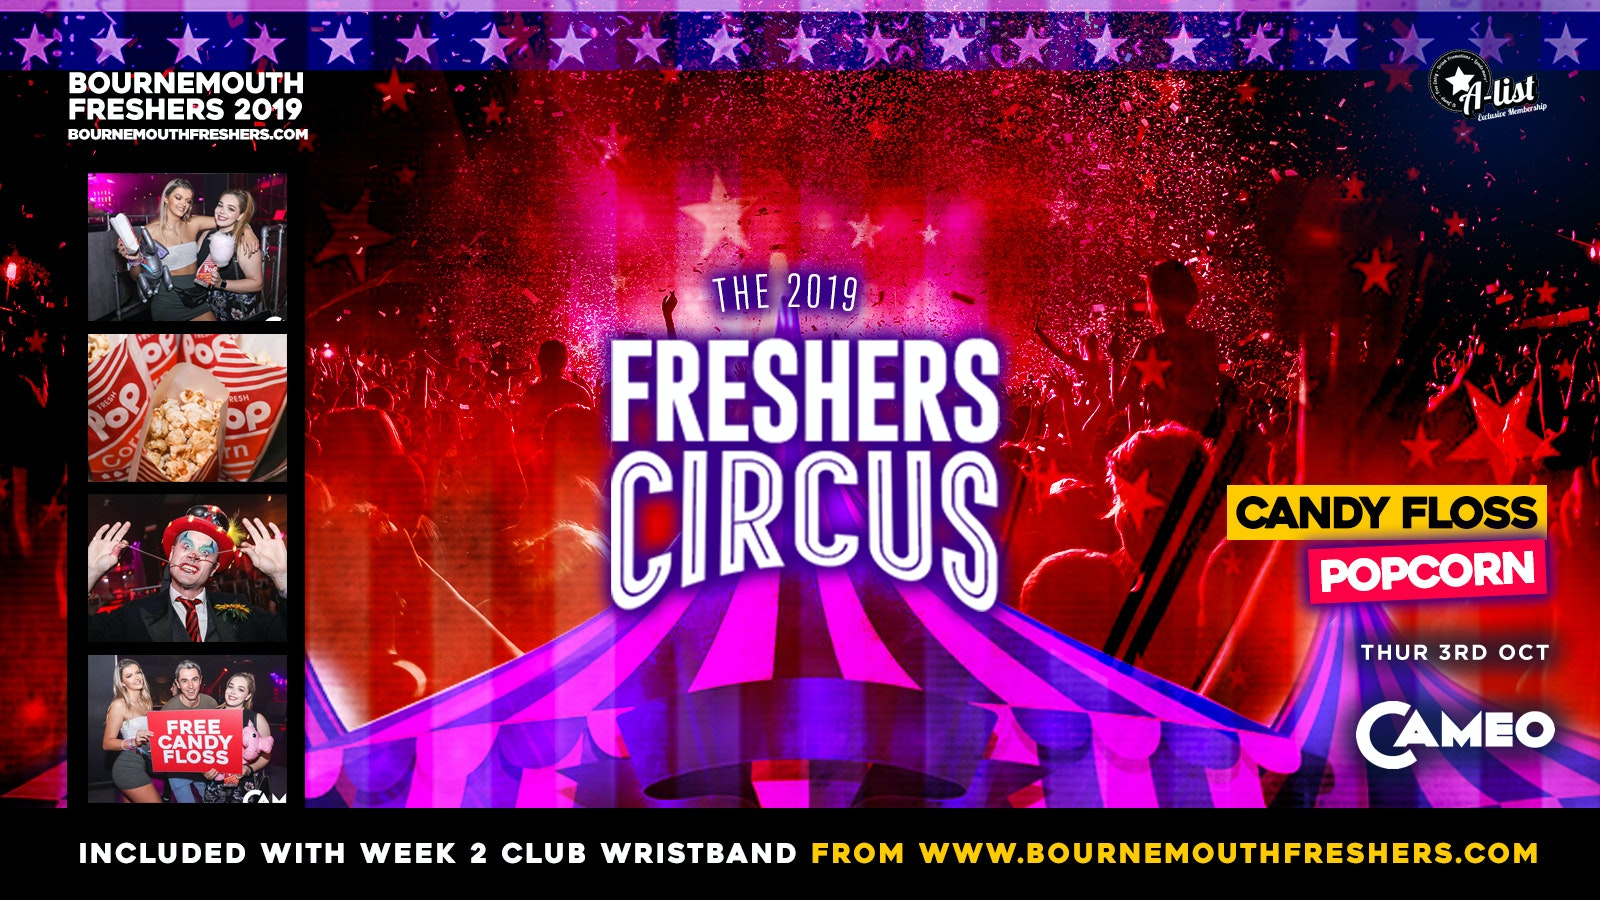 The Freshers Circus at Cameo // Bournemouth Freshers 2019